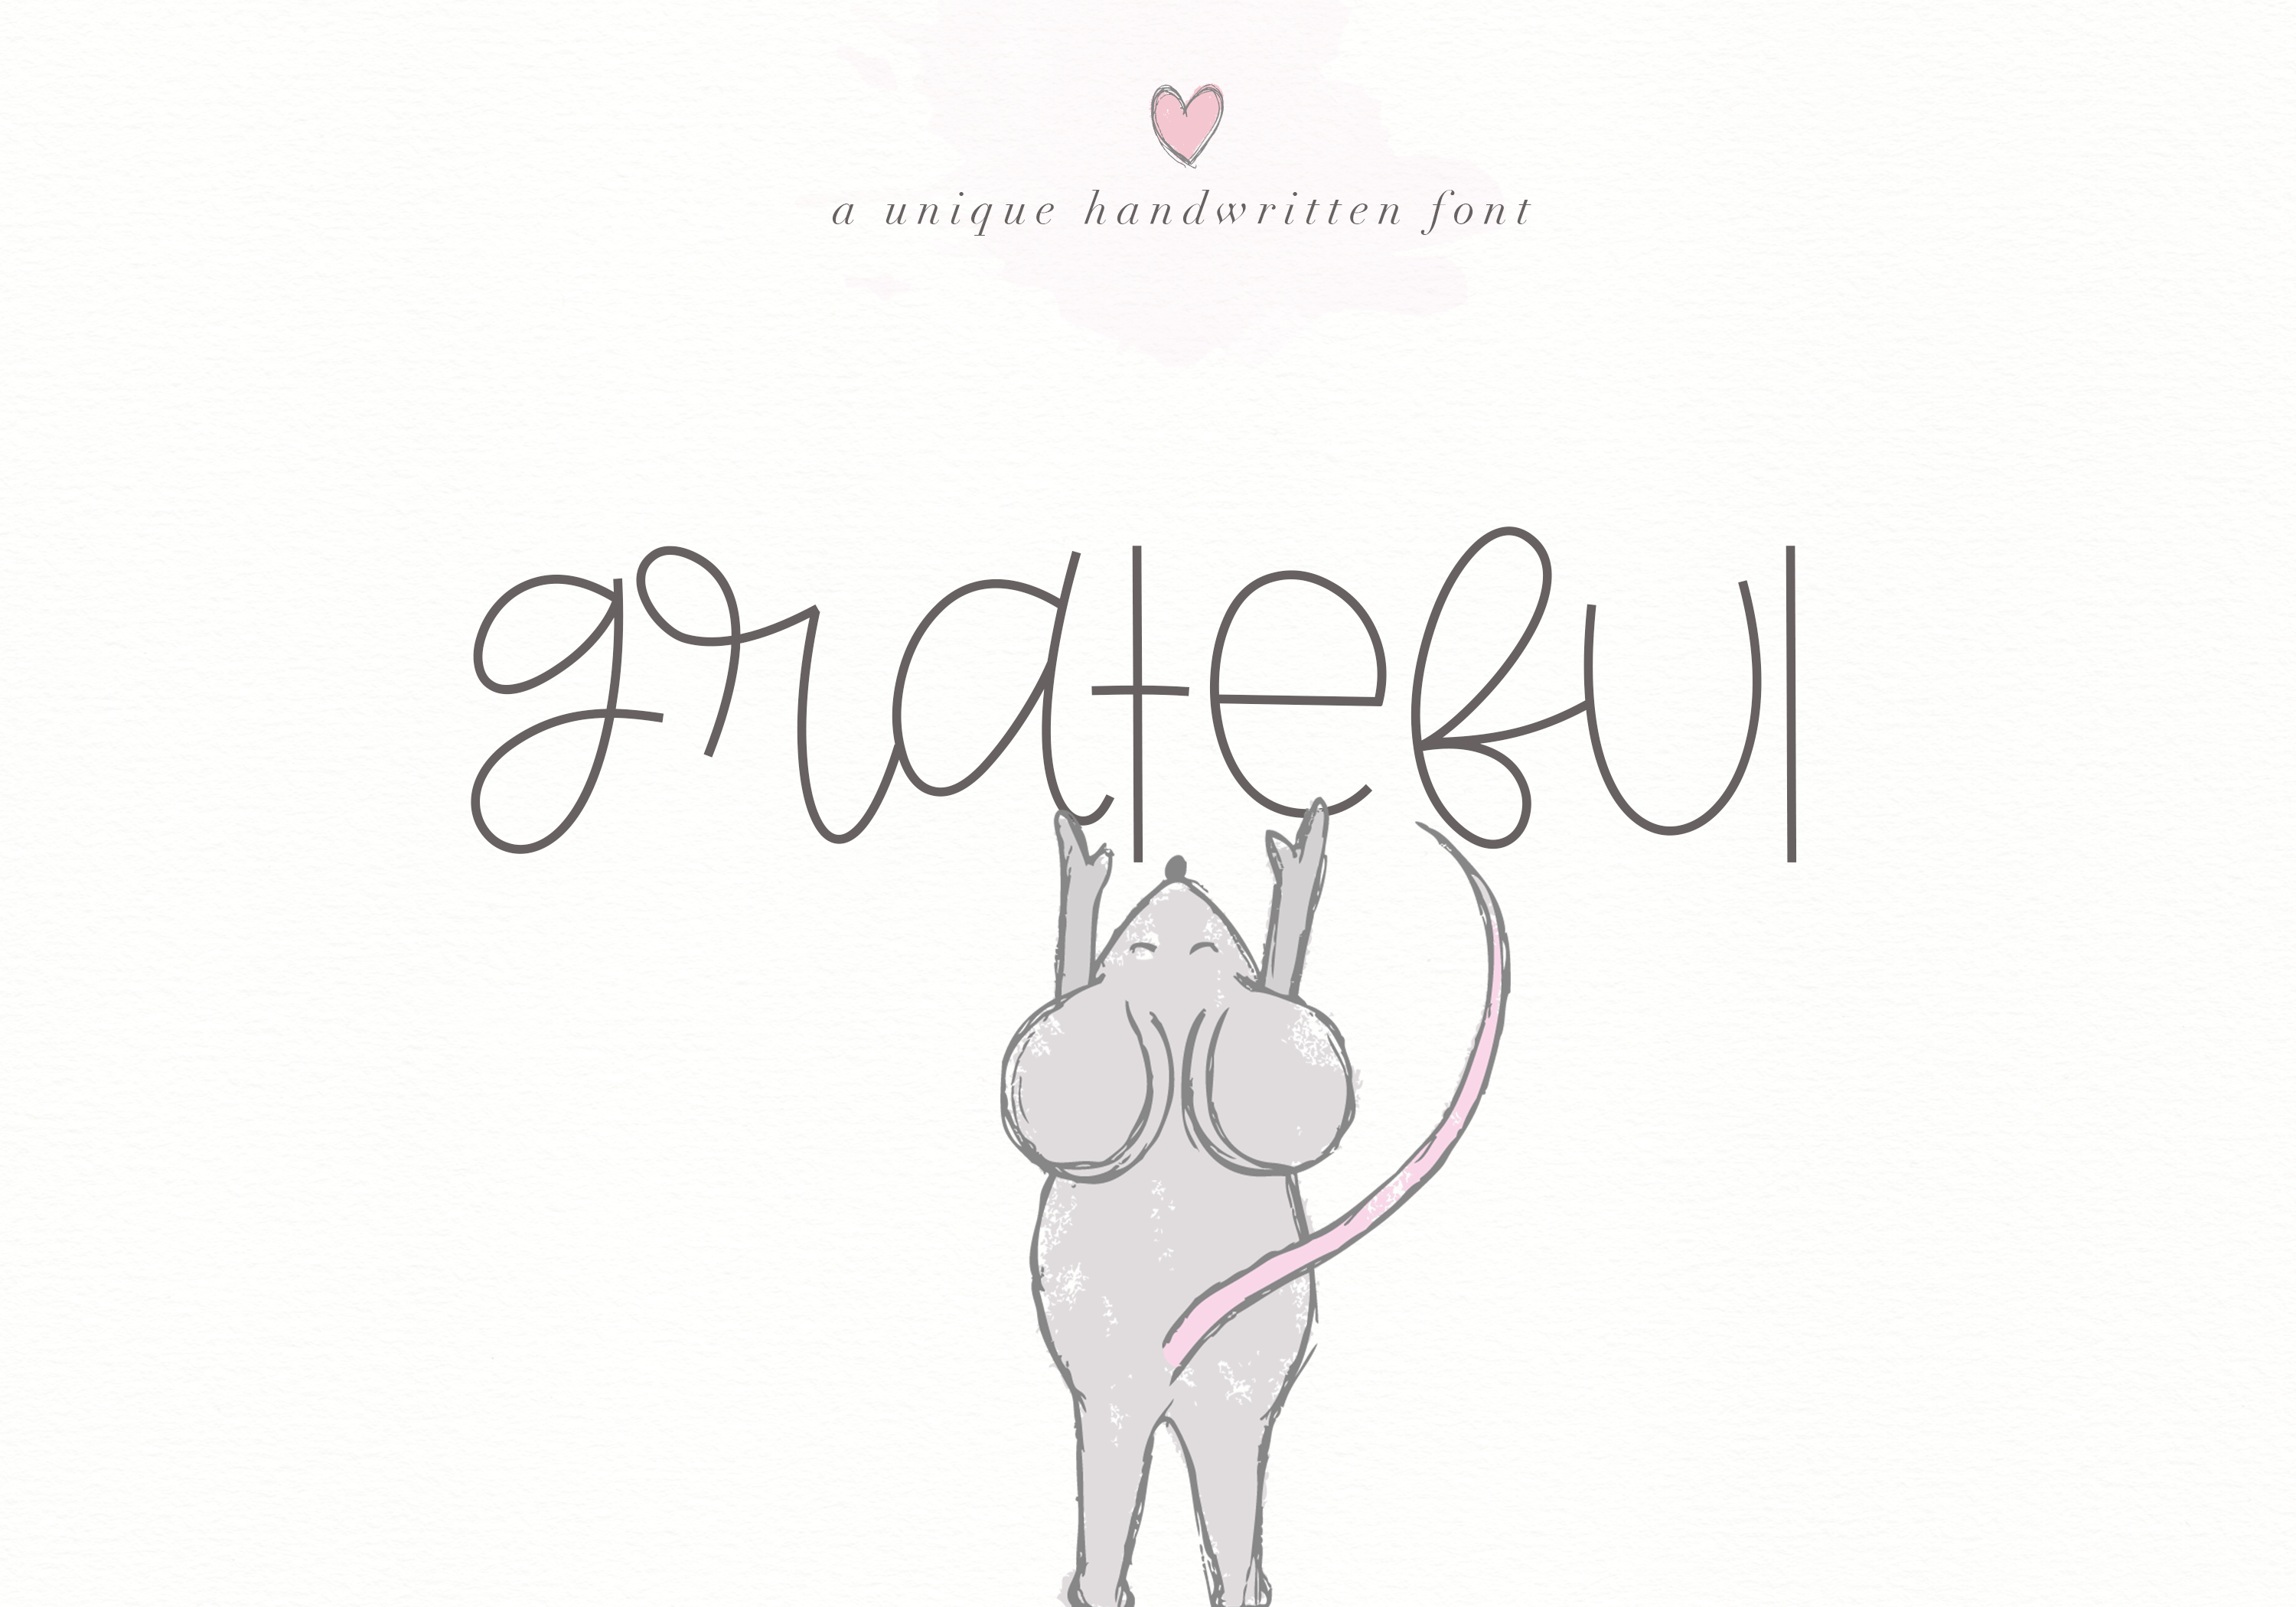 Grateful - Handwritten Font example image 1